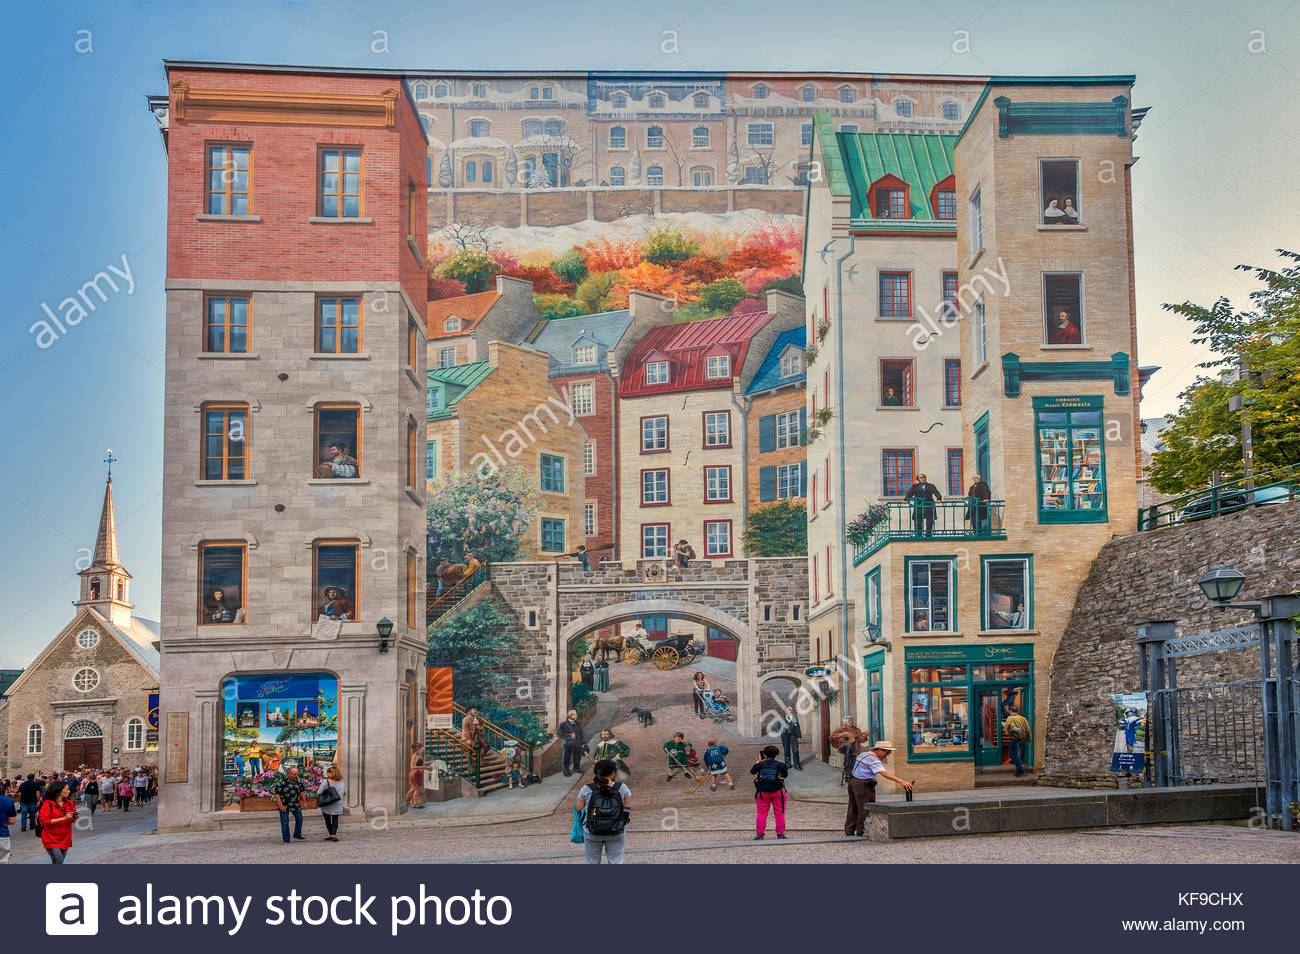 Wall Mural, Notre Dame Street, Quebec City, Canada   Stock Image Part 70